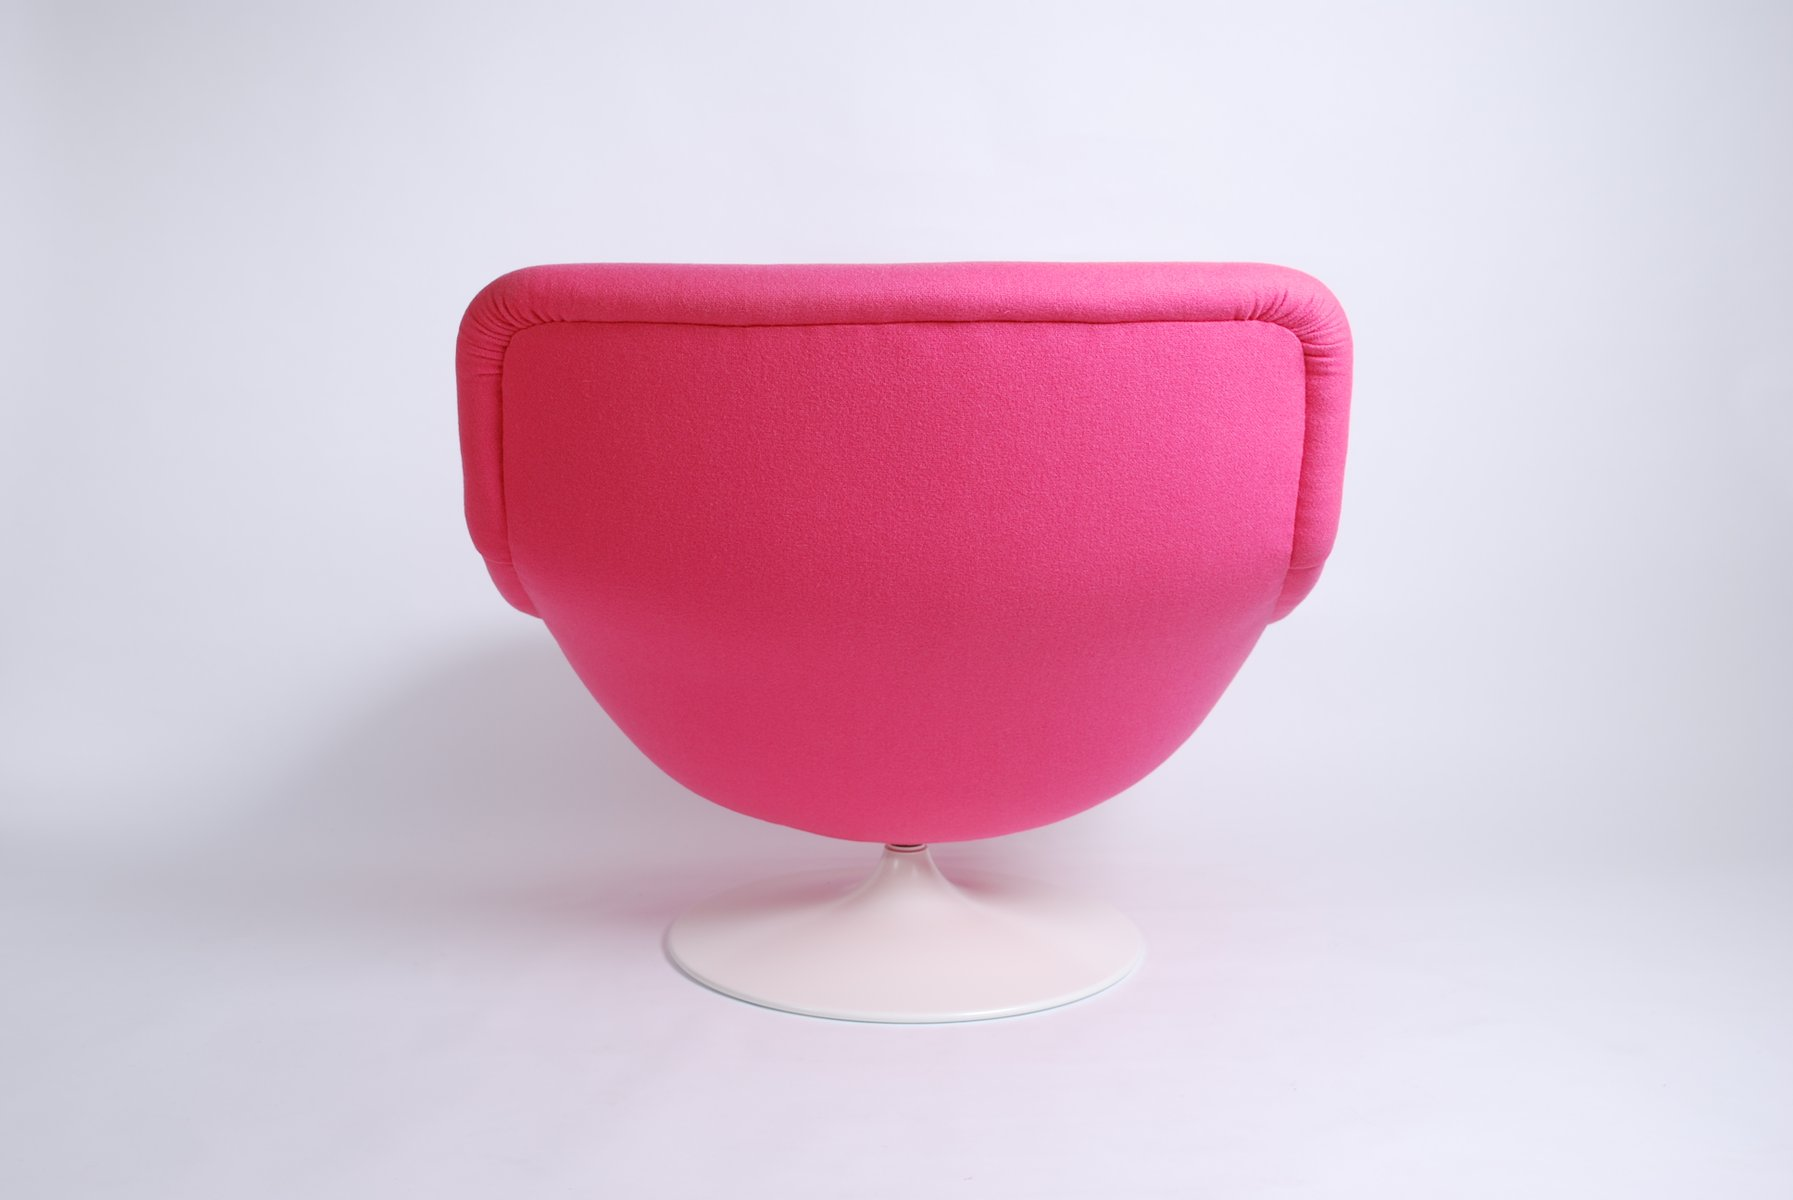 Vintage Pink F518 Lounge Swivel Chair by Geoffrey Harcourt for